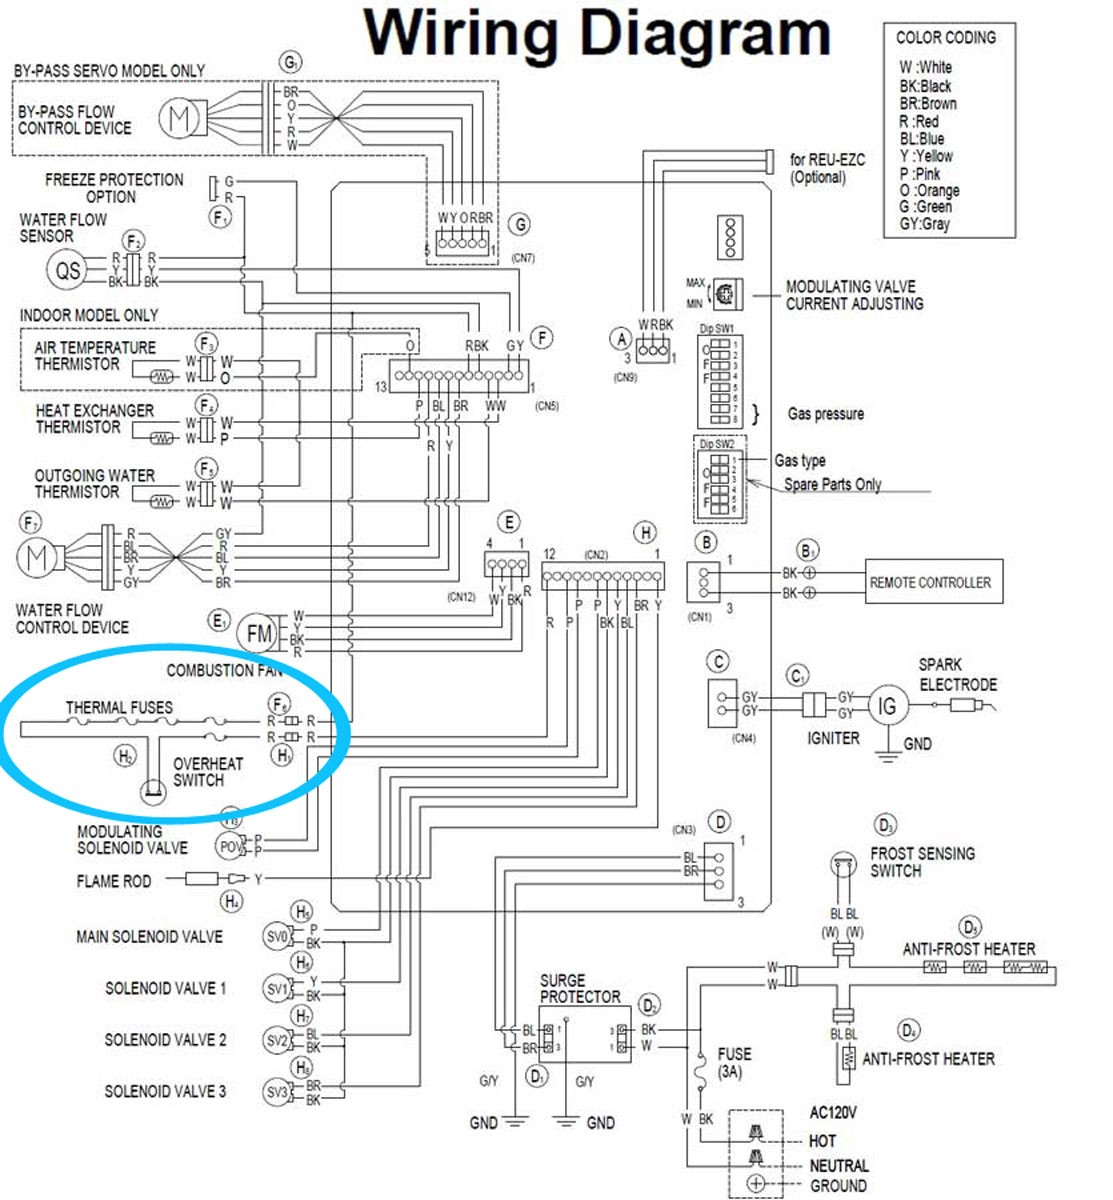 Check the electric troubleshoot from 2008 pdf